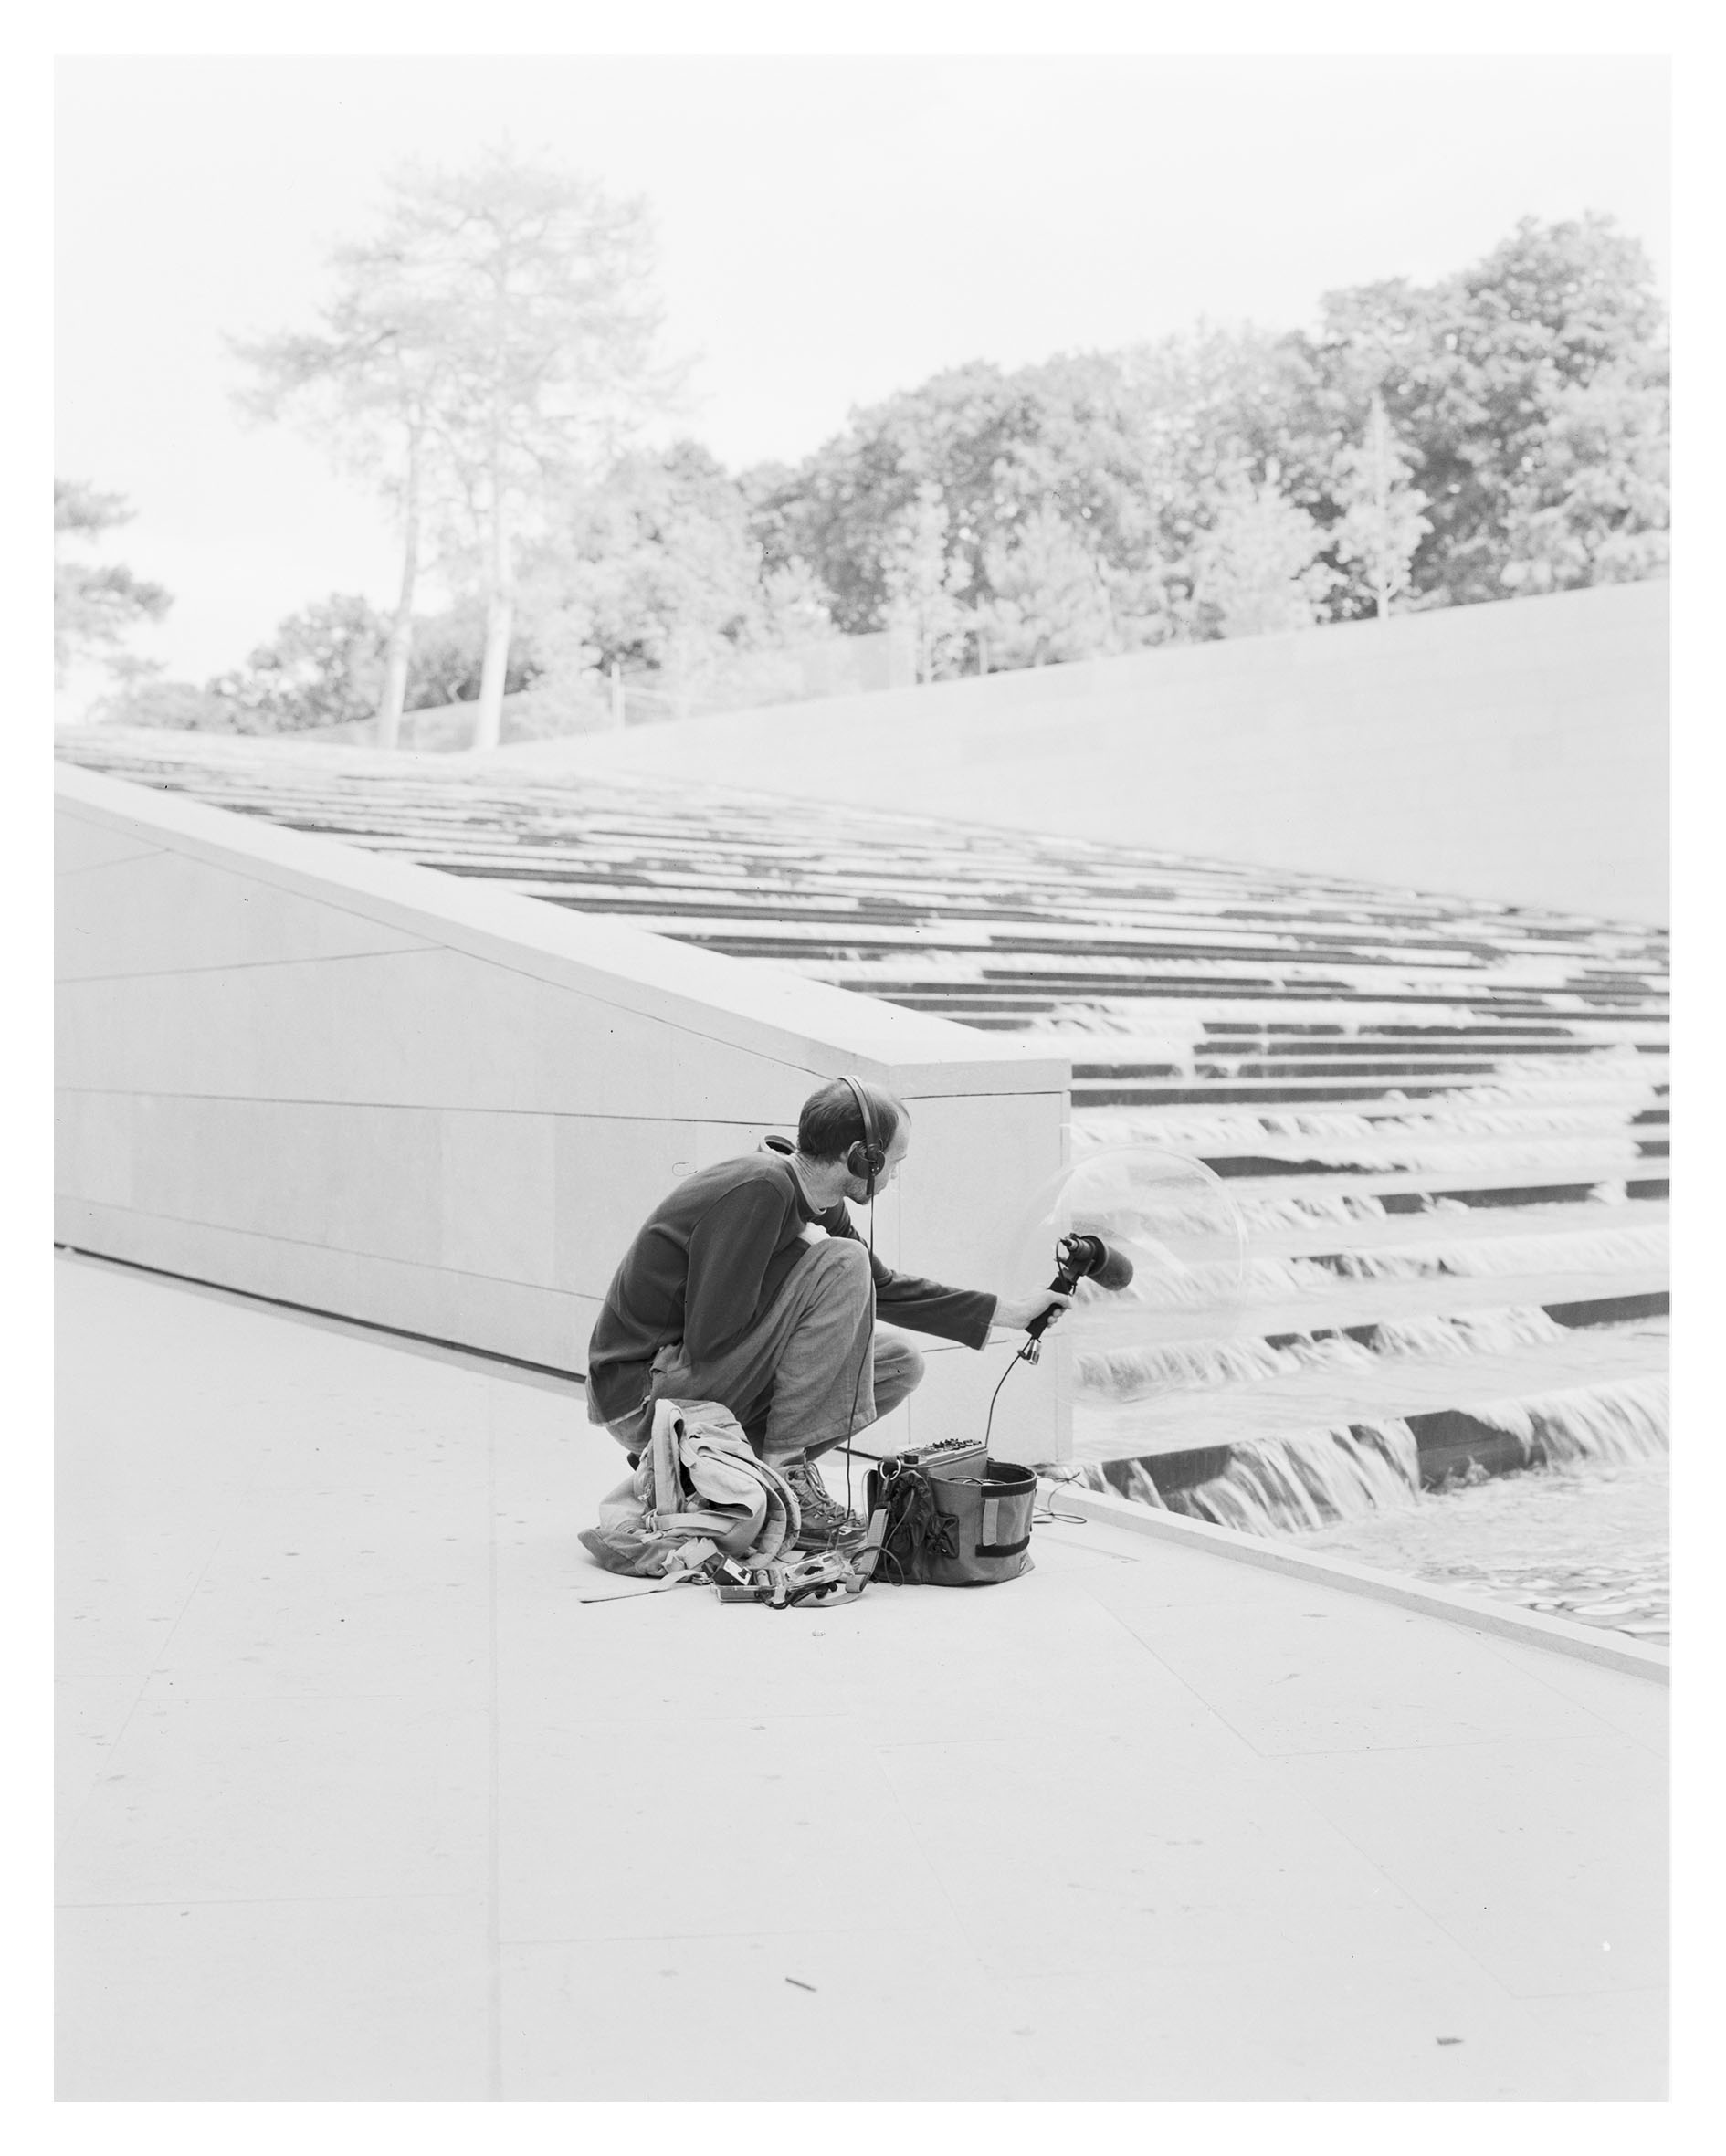 Frederic Nogray recording sound on From Architecture, Paris, July 2014, Photo: Alexandre Guirkinger, Courtesy Fondation Louis Vuitton